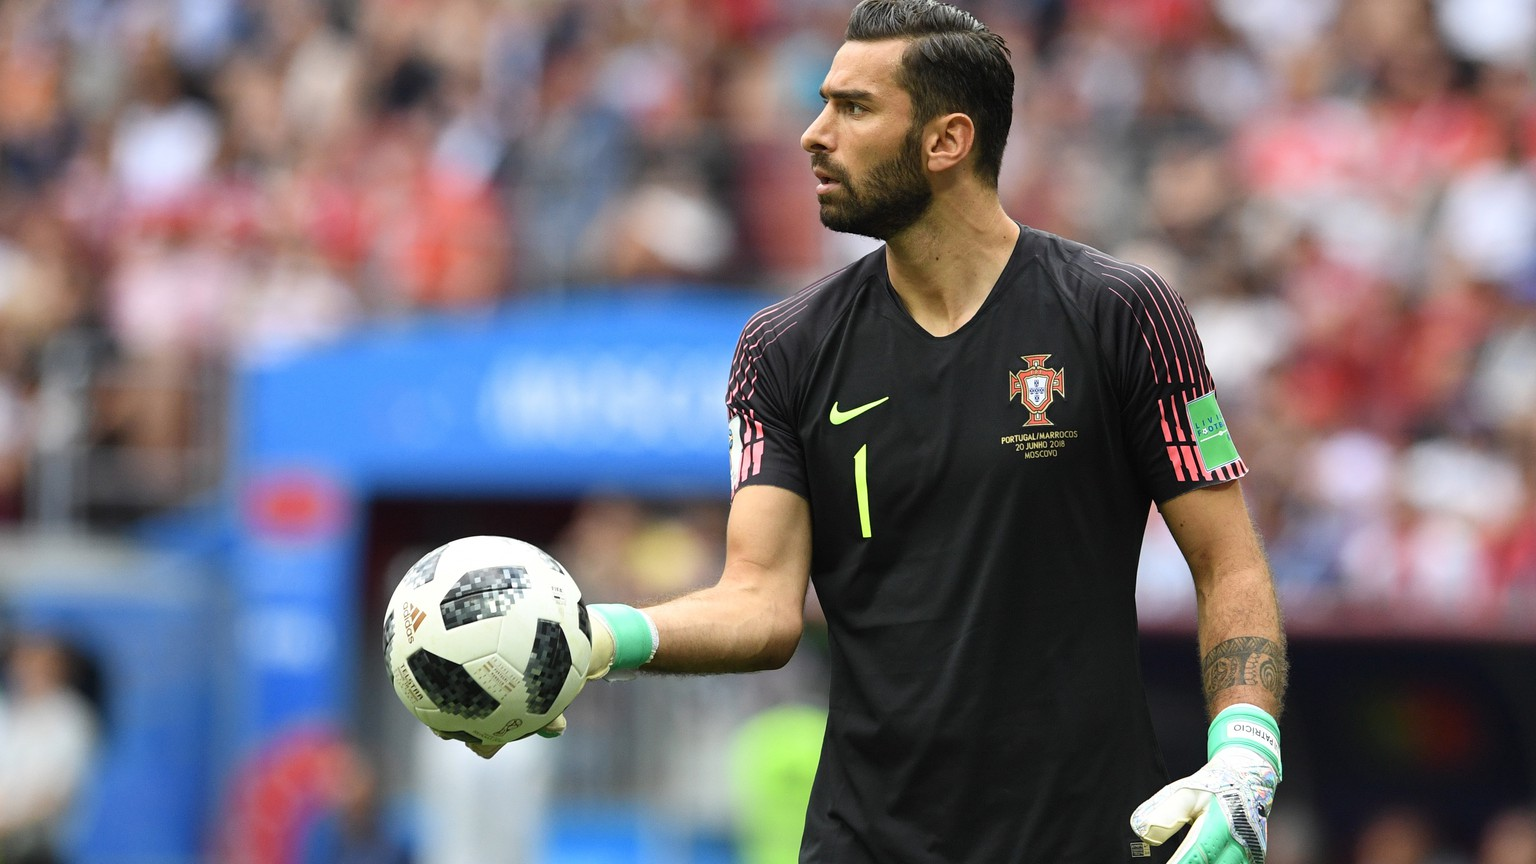 epa06824454 Goalkeeper Rui Patricio of Portugal during the FIFA World Cup 2018 group B preliminary round soccer match between Portugal and Morocco in Moscow, Russia, 20 June 2018.